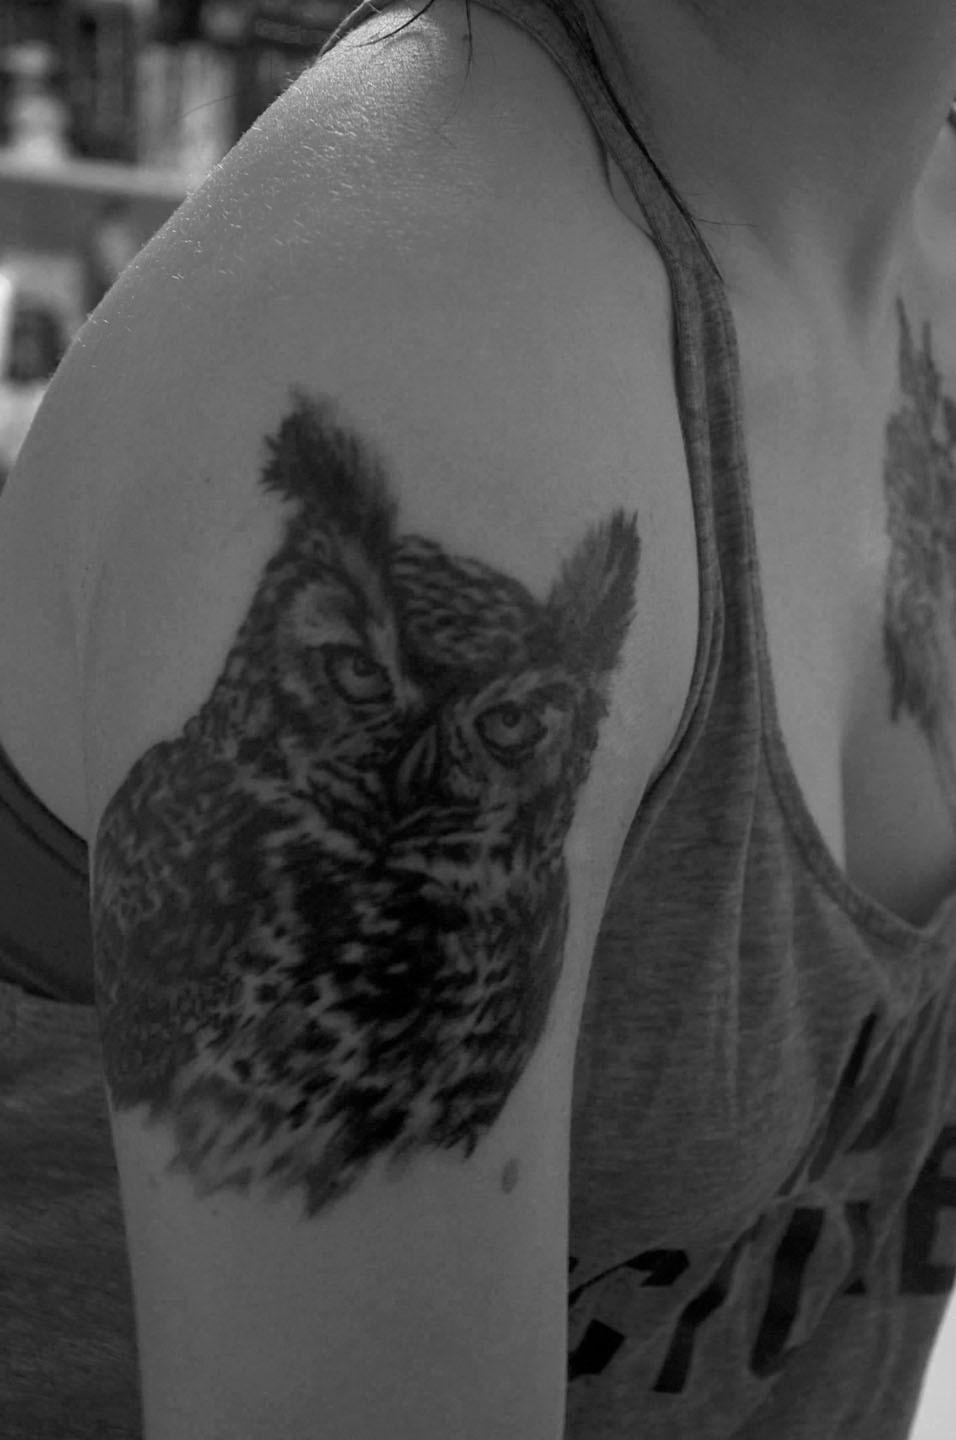 fuckyeahtattoos:  Beautiful owl tattooed by Sami Strange at Mainely Custom Tattoo in Kittery, ME.